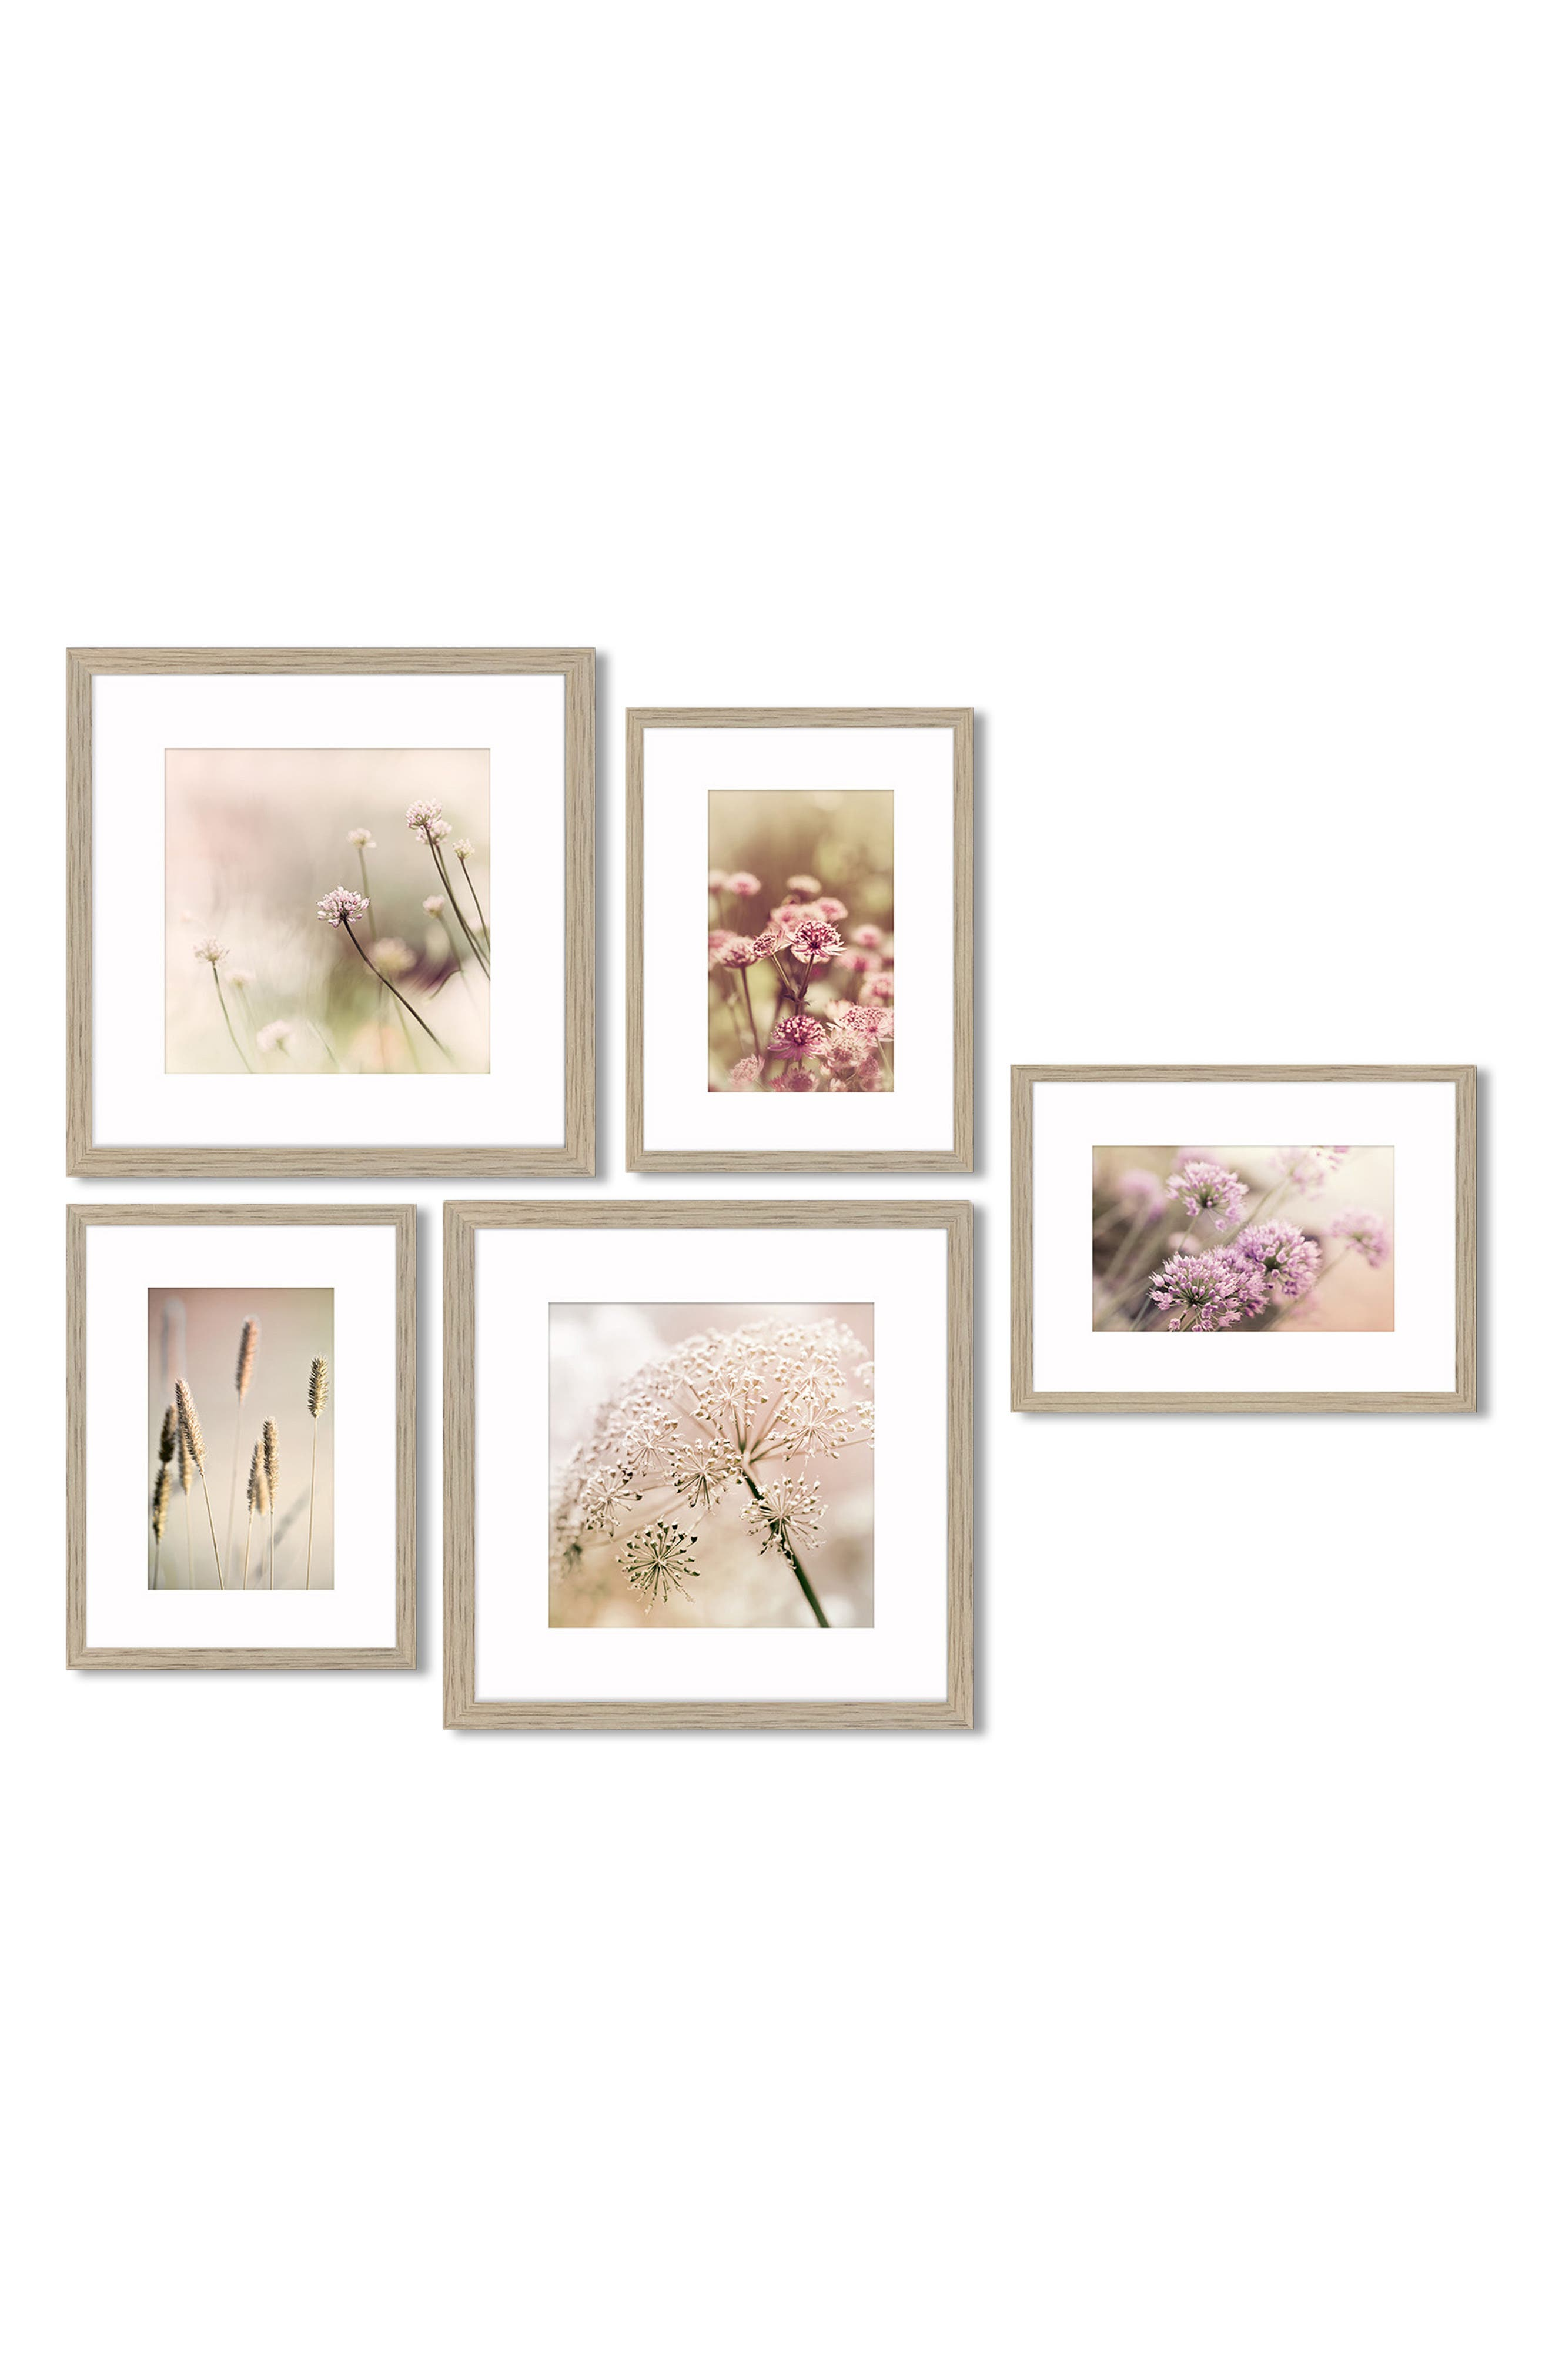 Alternate Image 1 Selected - Crystal Art Gallery 5-Piece Framed Wall Art Gallery